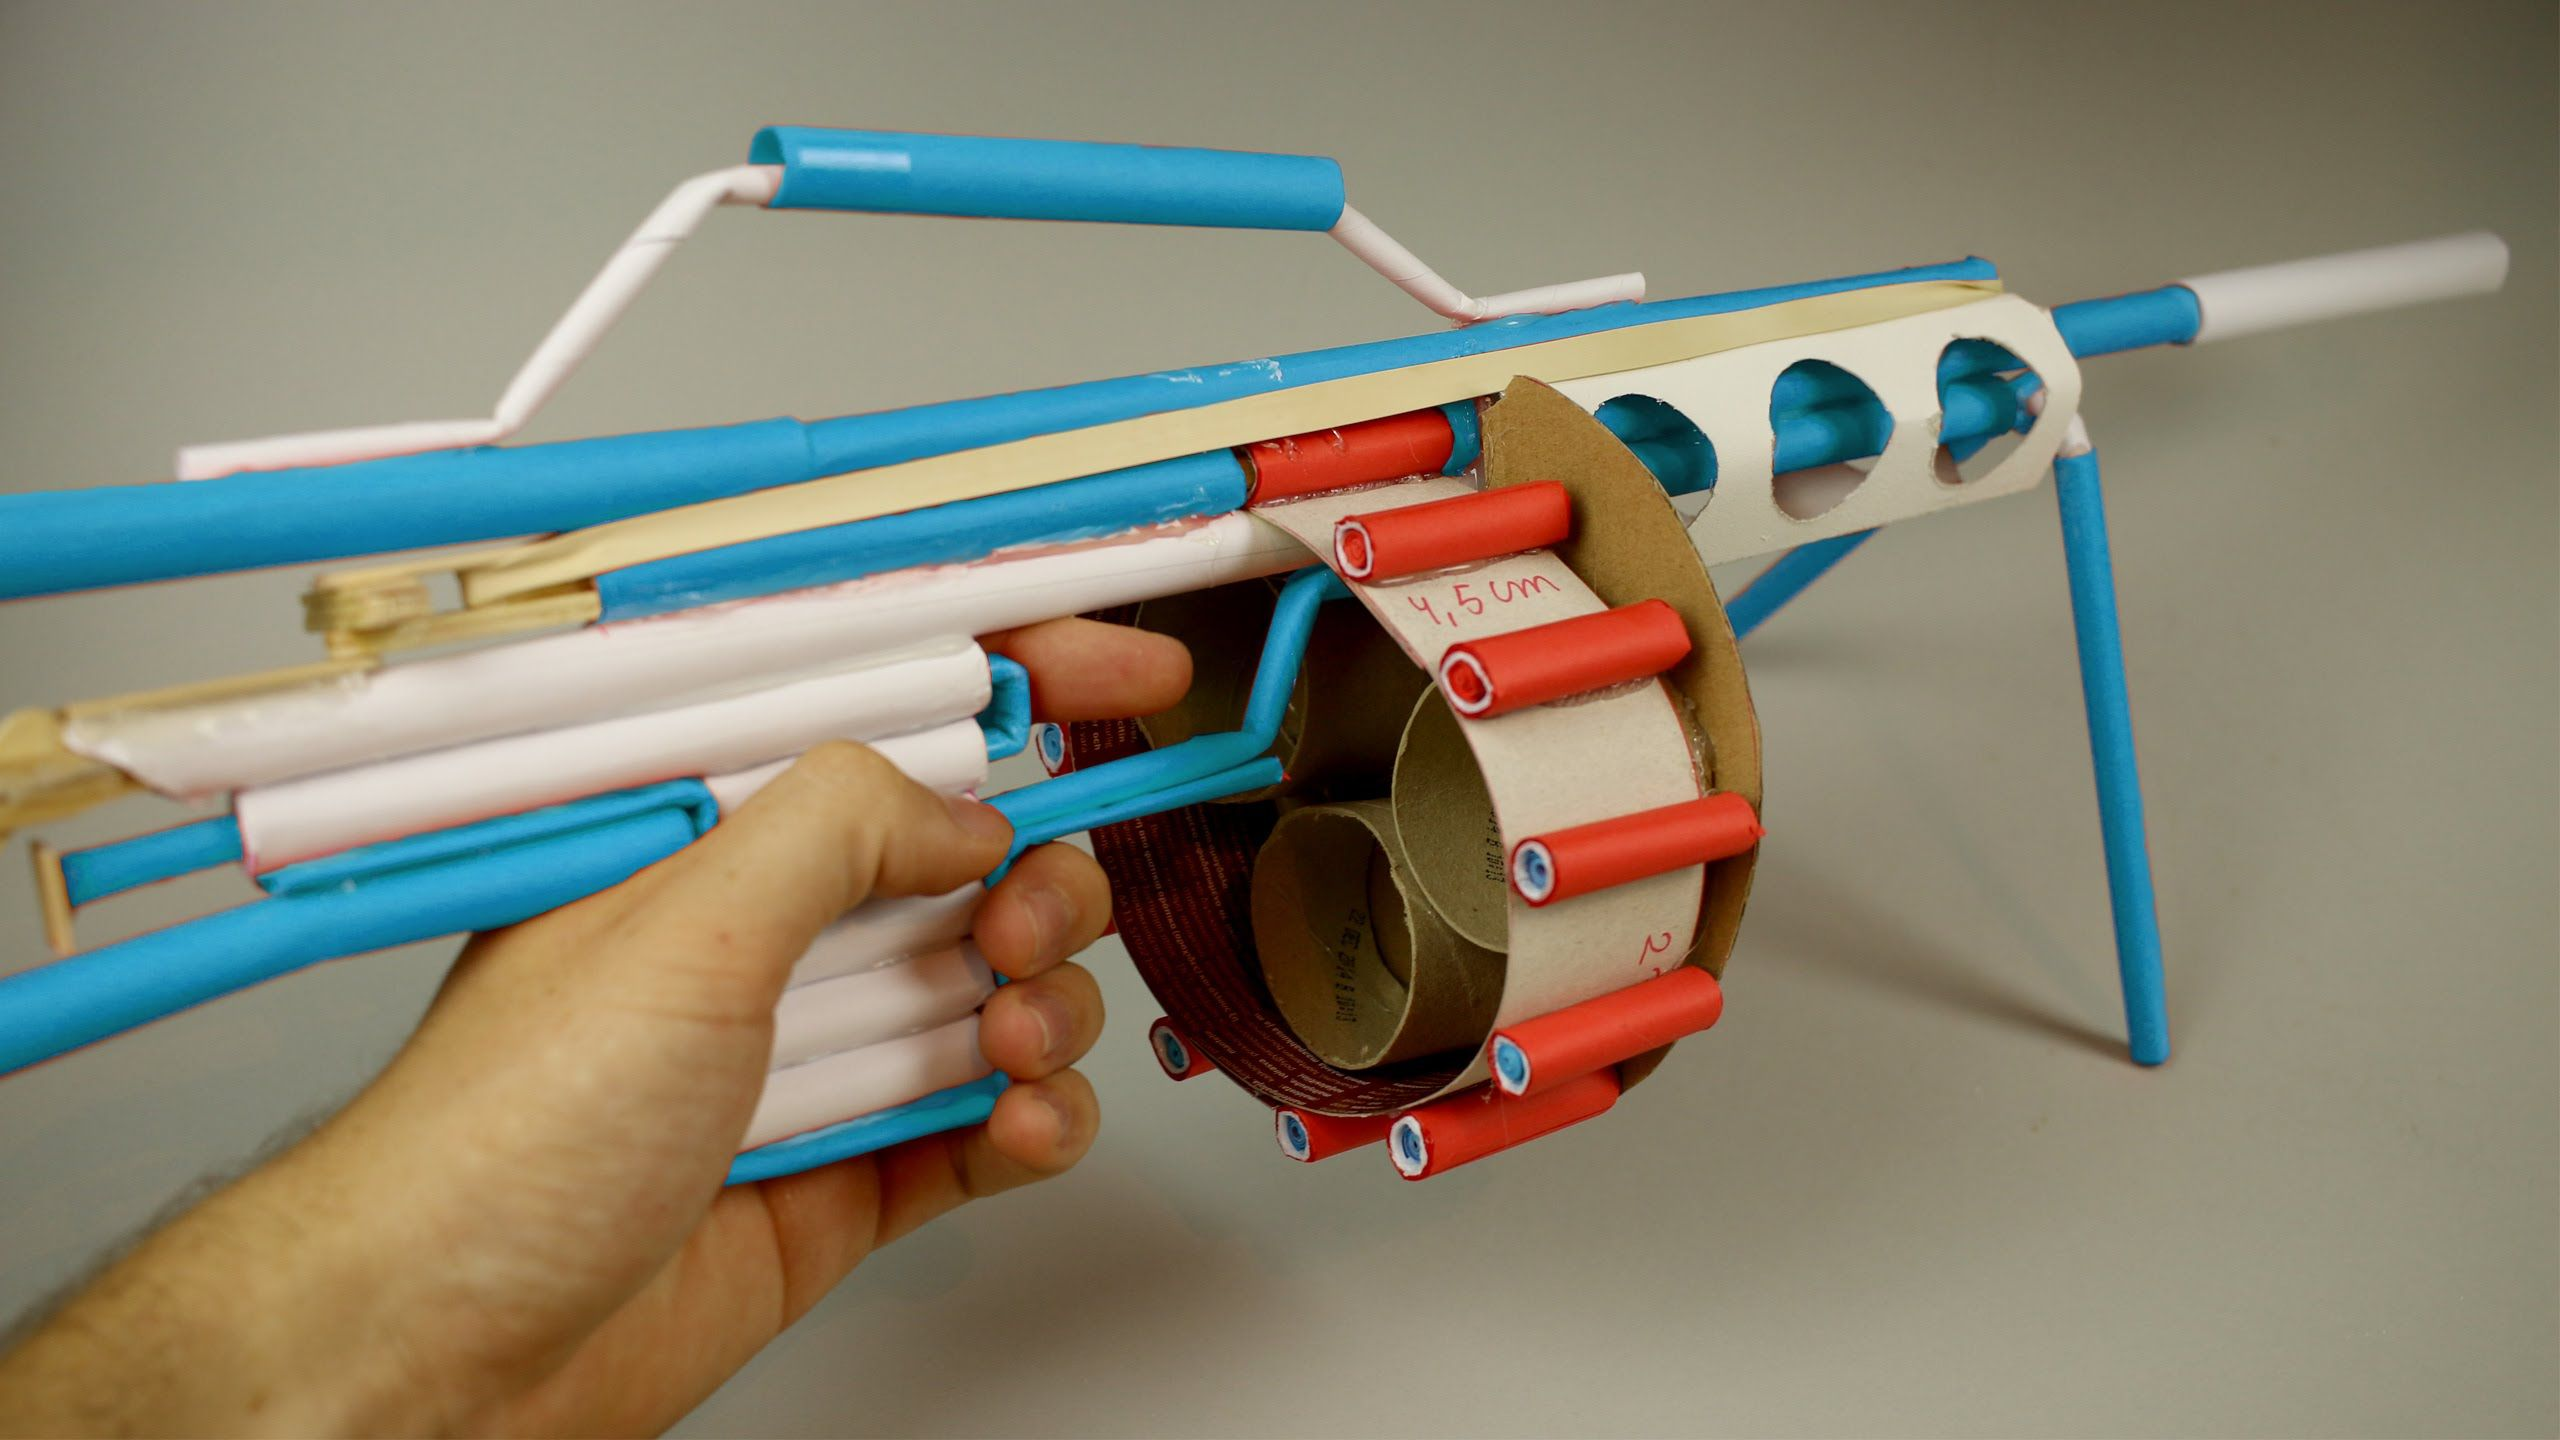 How To Build A Lego Gun That Shoots Rubber Bands